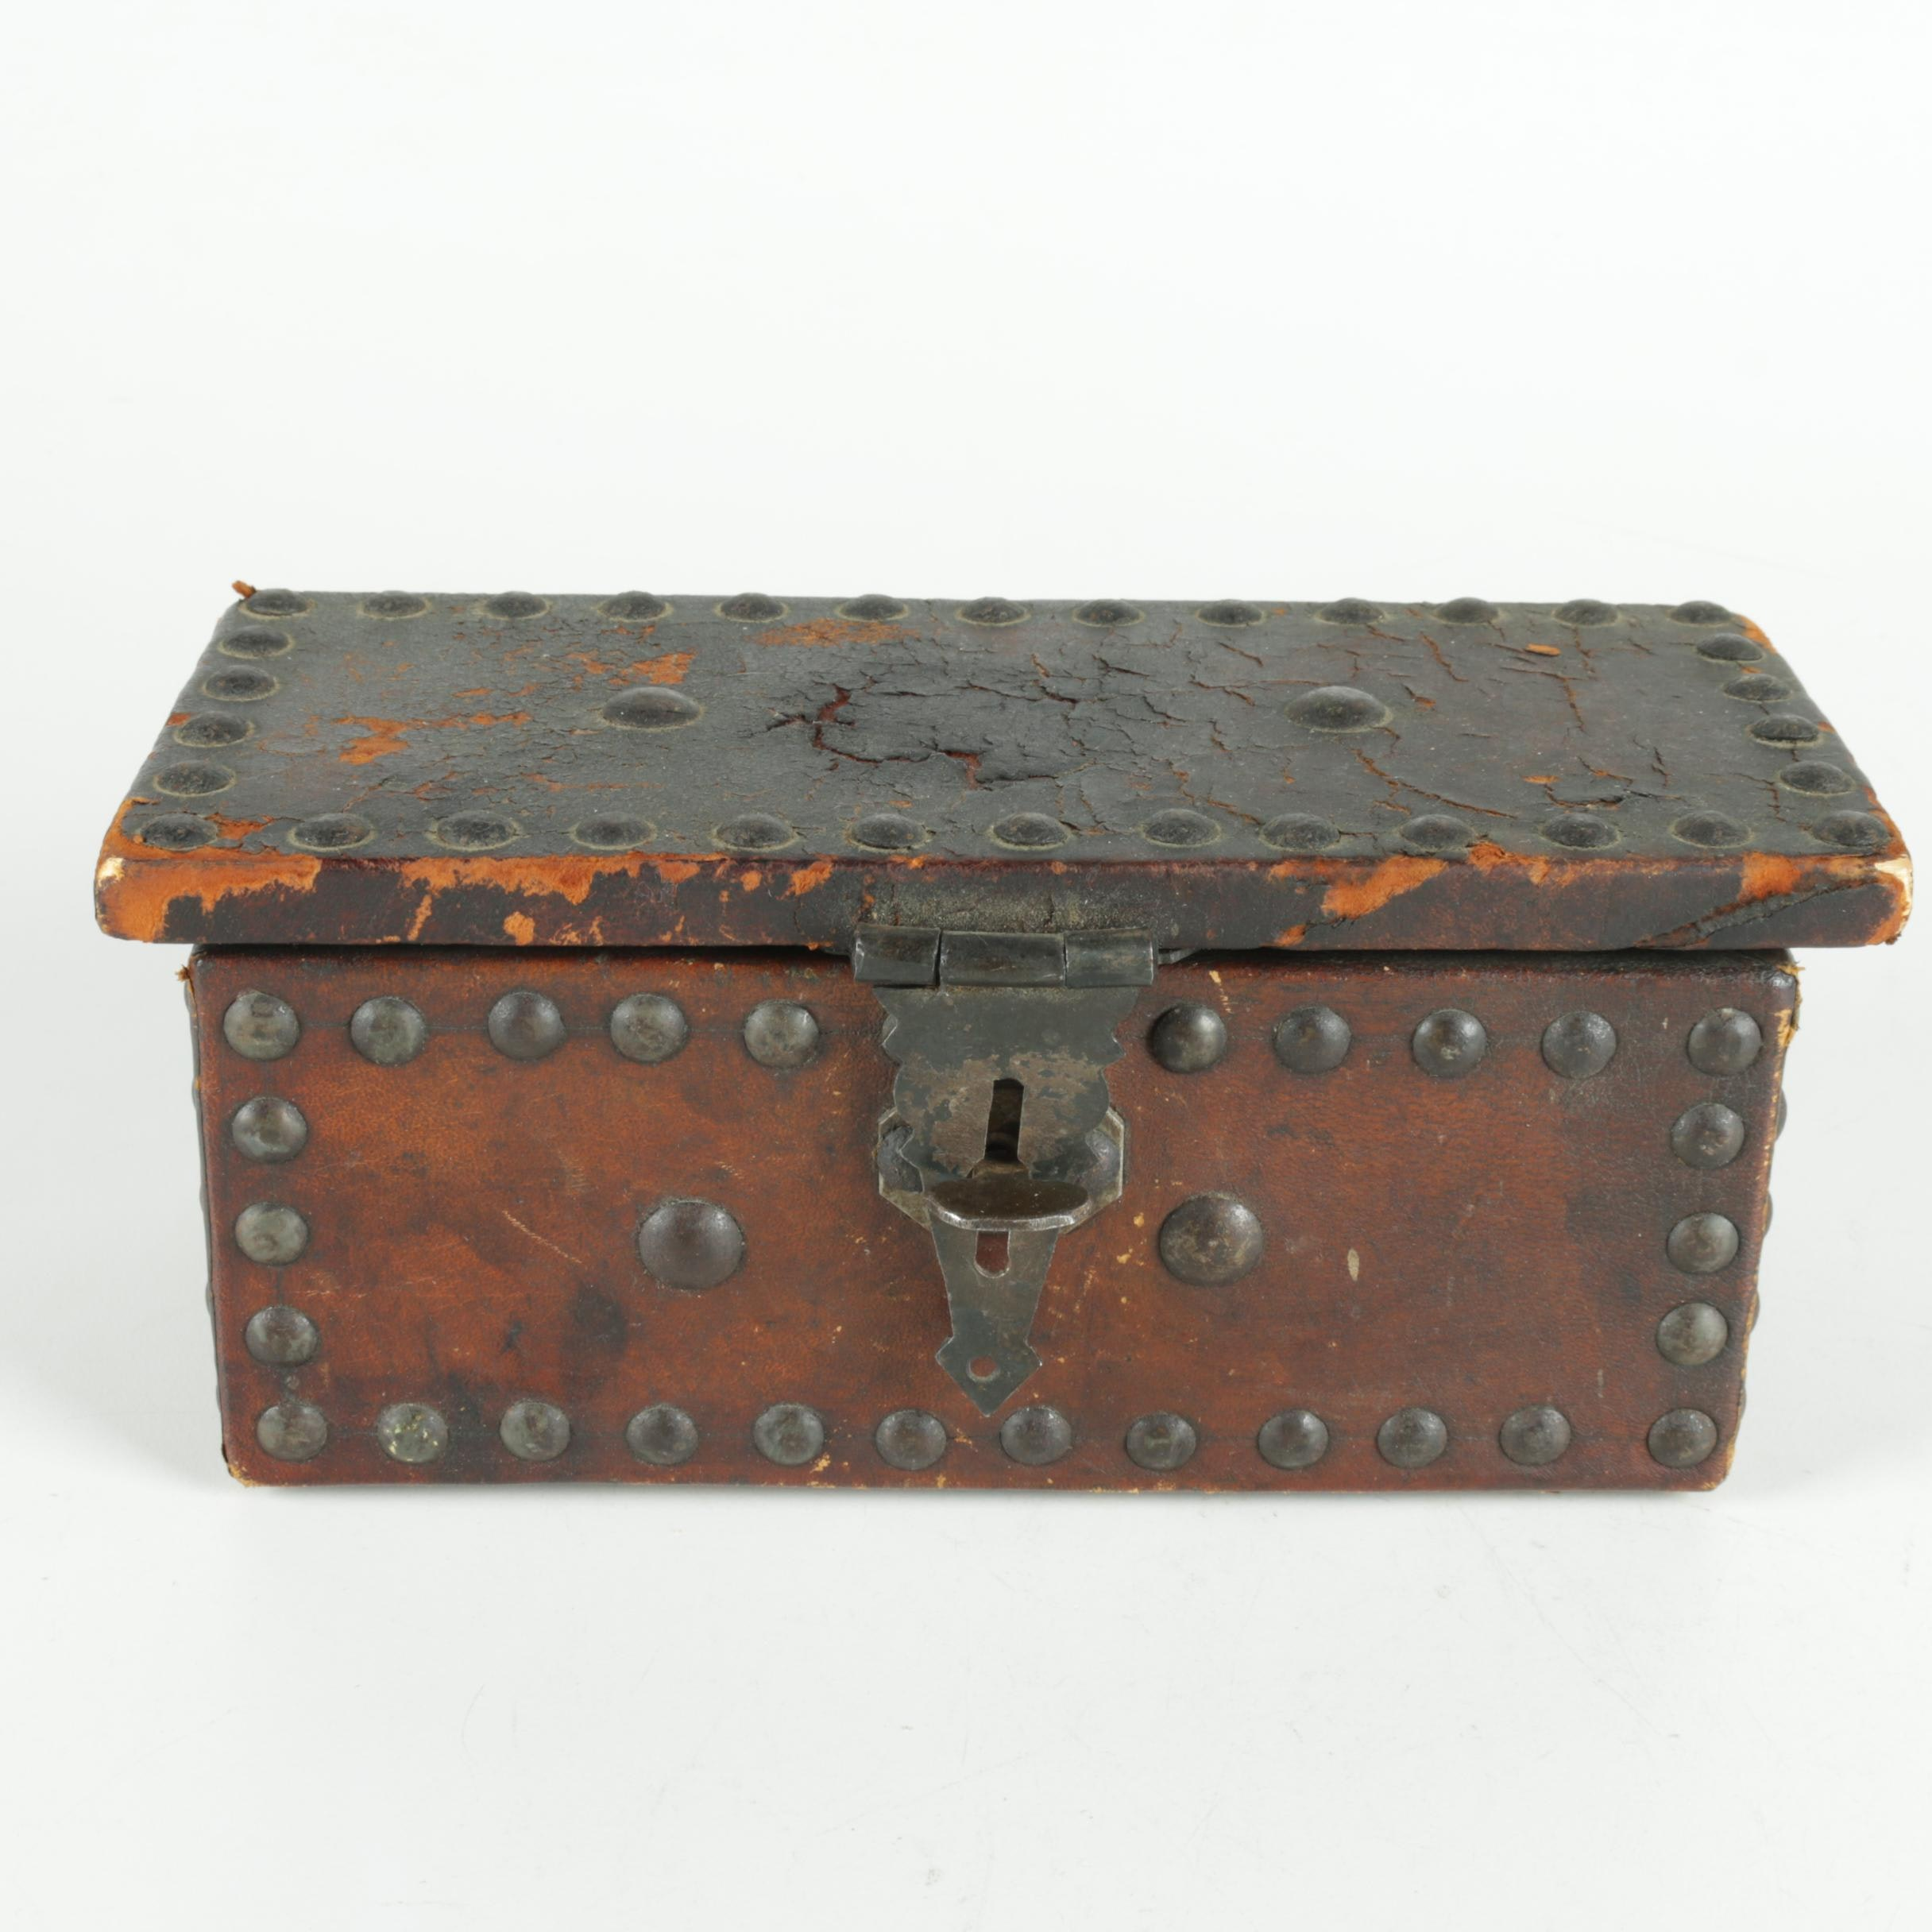 Antique Leather and Wood Tabletop Chest